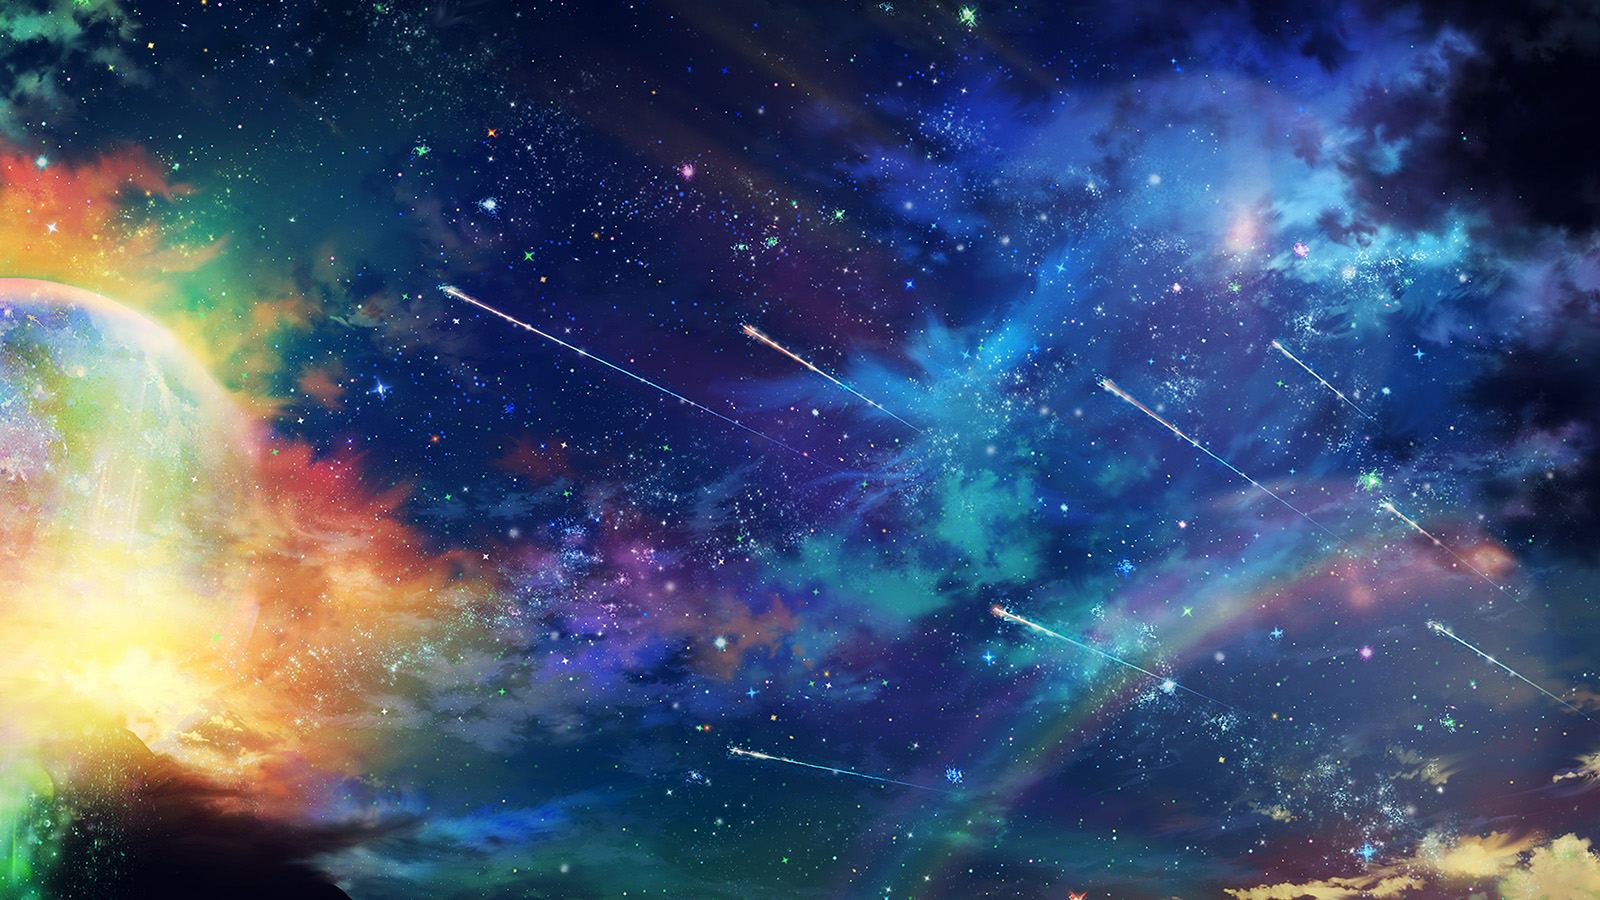 Anime Fall Wallpaper Am61 Amazing Wonderful Tonight Sky Dark Star Space Wallpaper